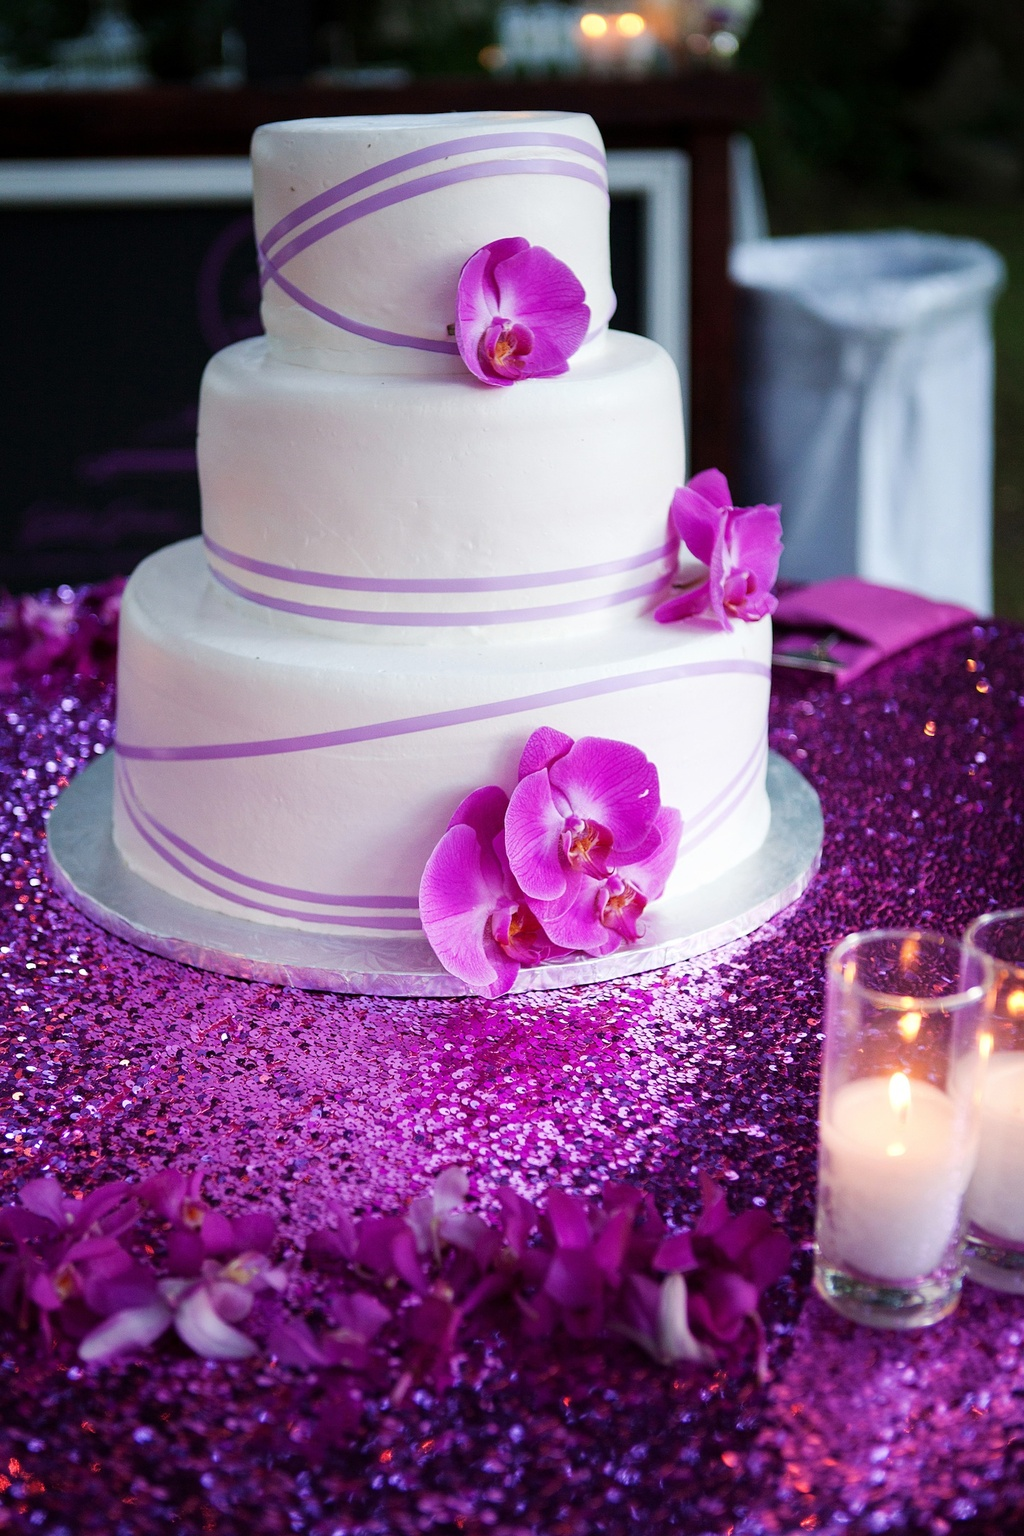 Wedding Cakes Purple Orchids Elegant Winery In Malibu Classic Cake With